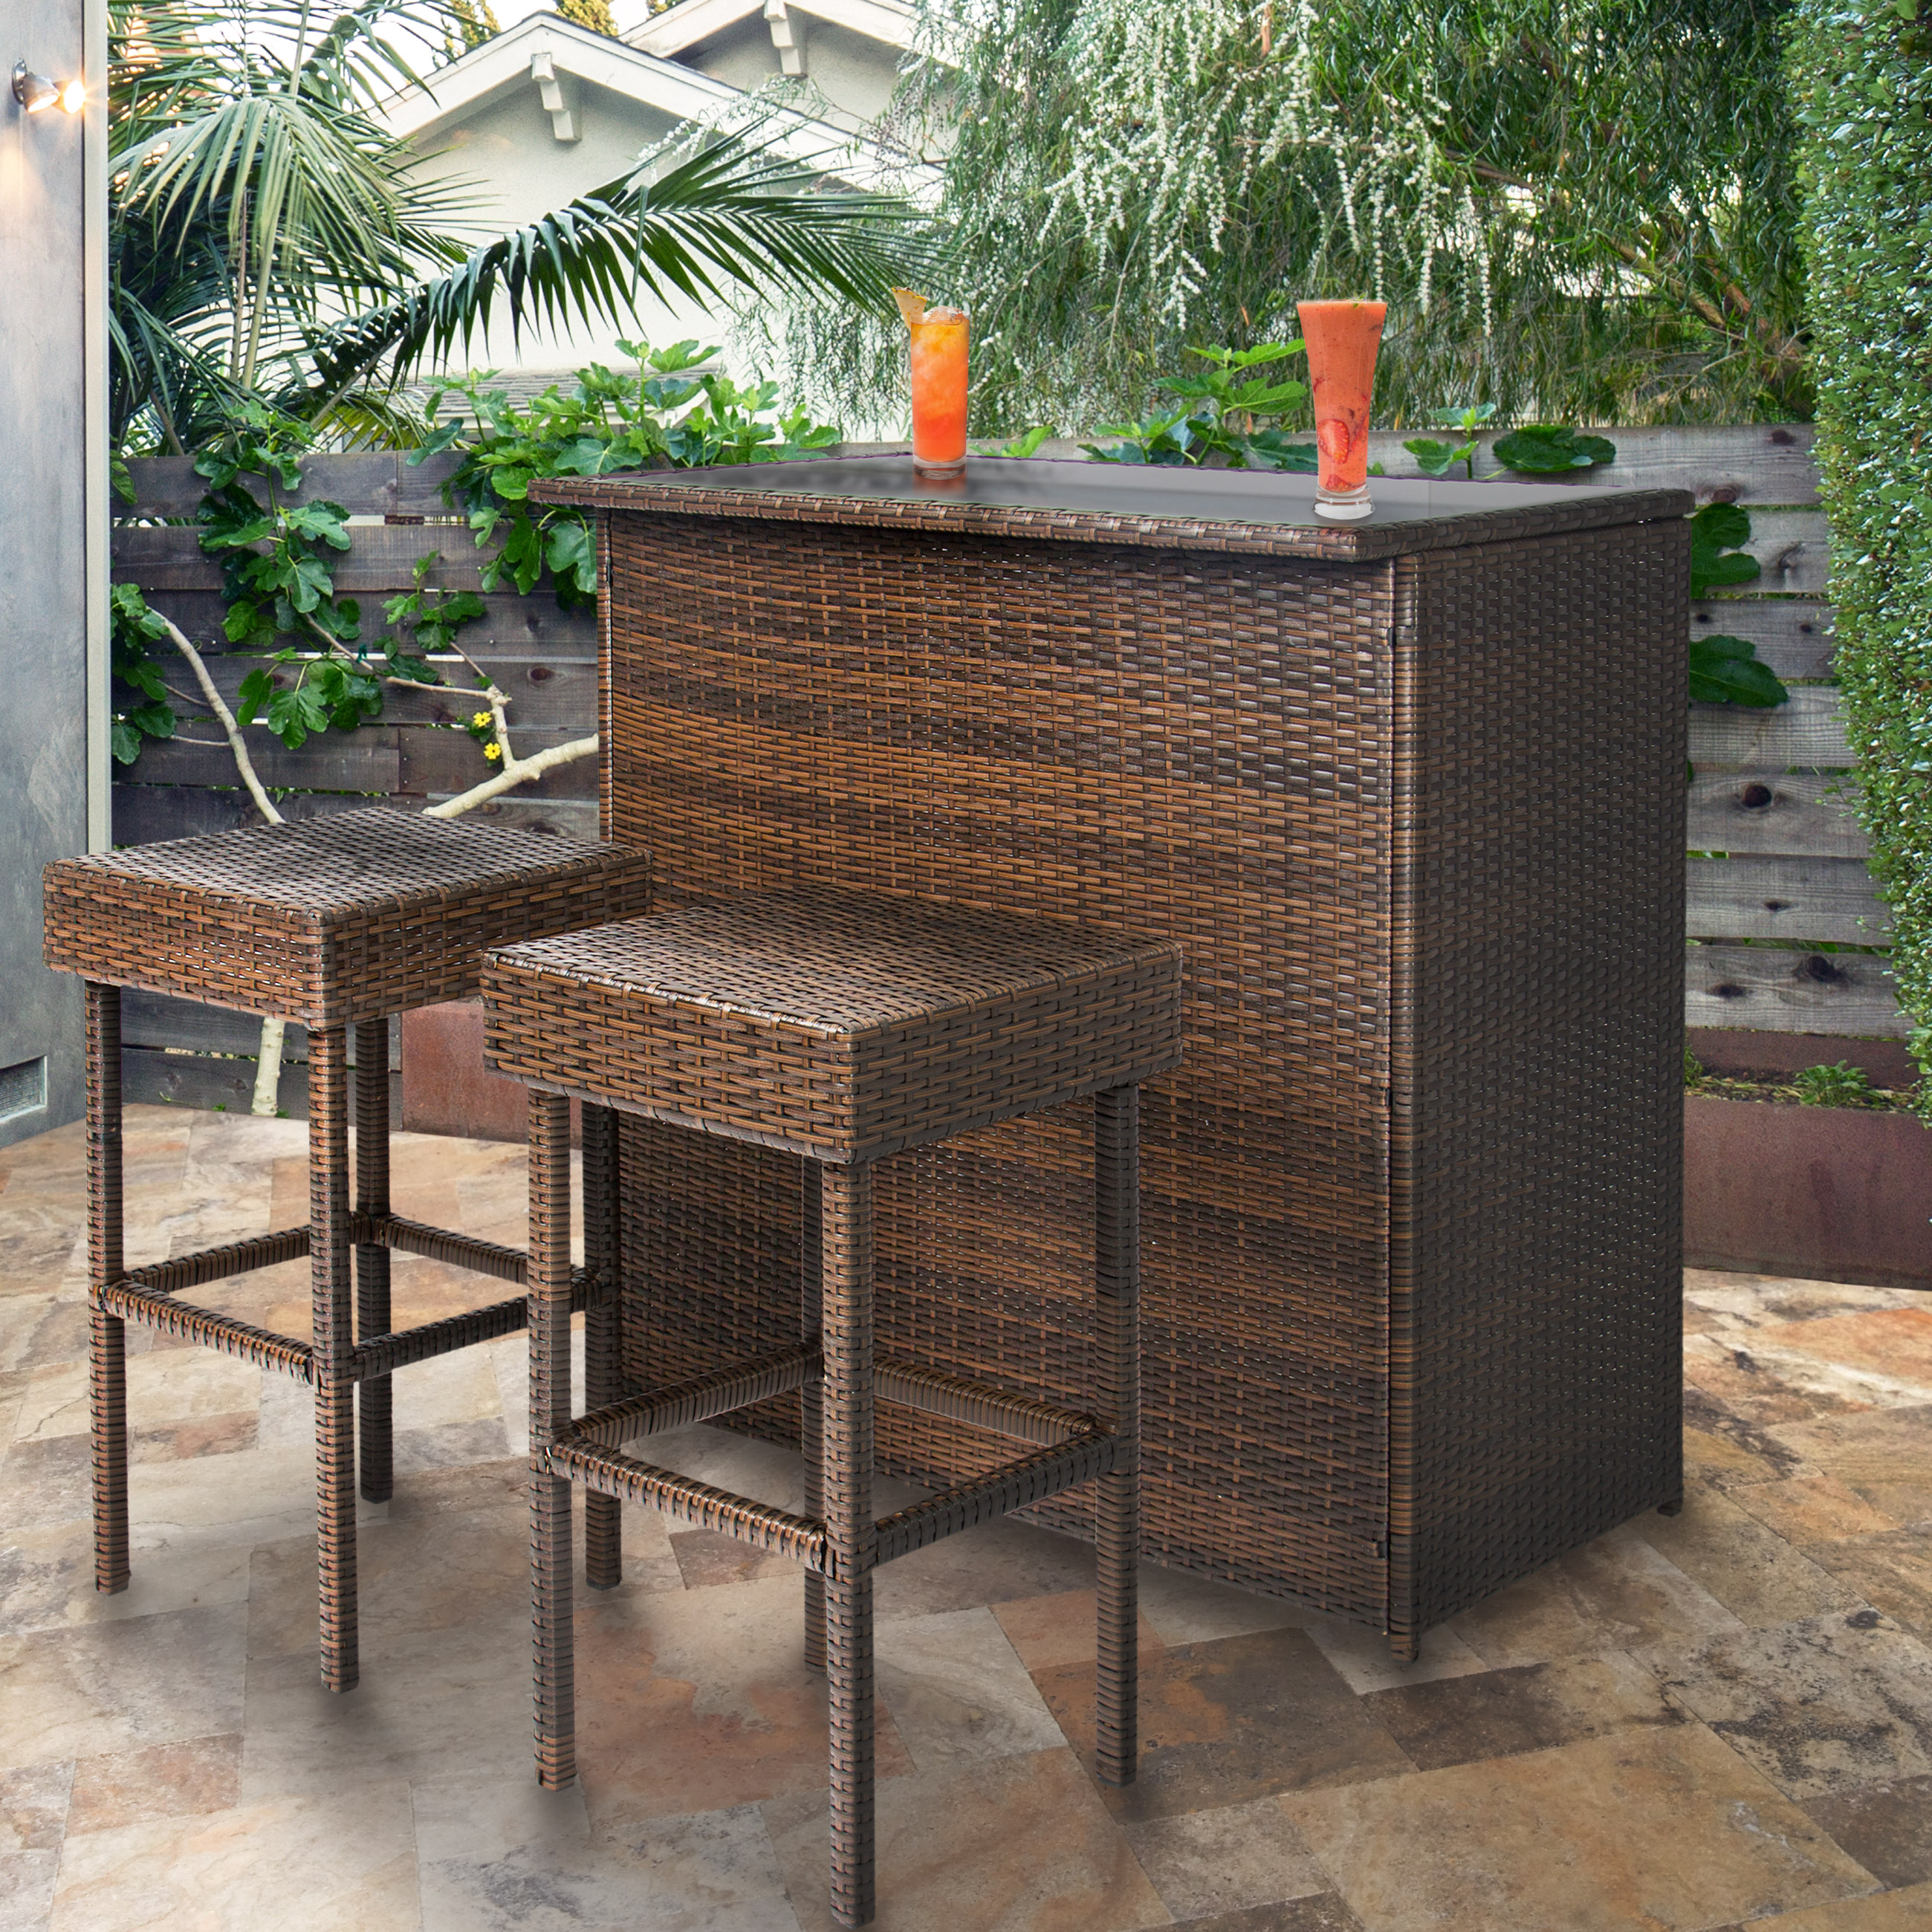 rattan outdoor furniture best choice products 3pc wicker bar set patio outdoor backyard table u0026 UICWKTV